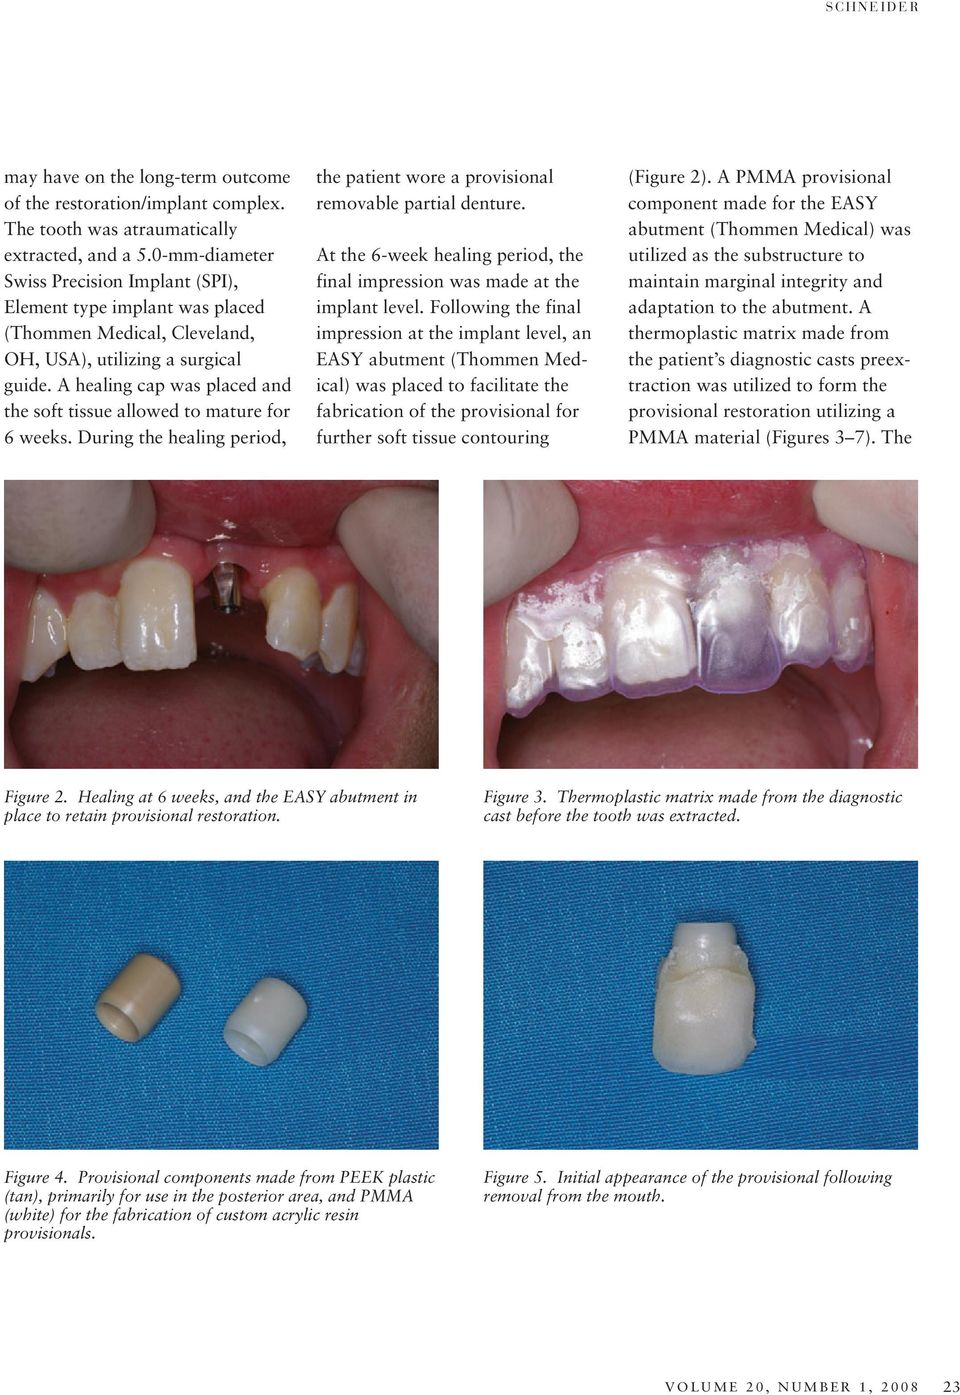 A healing cap was placed and the soft tissue allowed to mature for 6 weeks. During the healing period, the patient wore a provisional removable partial denture.